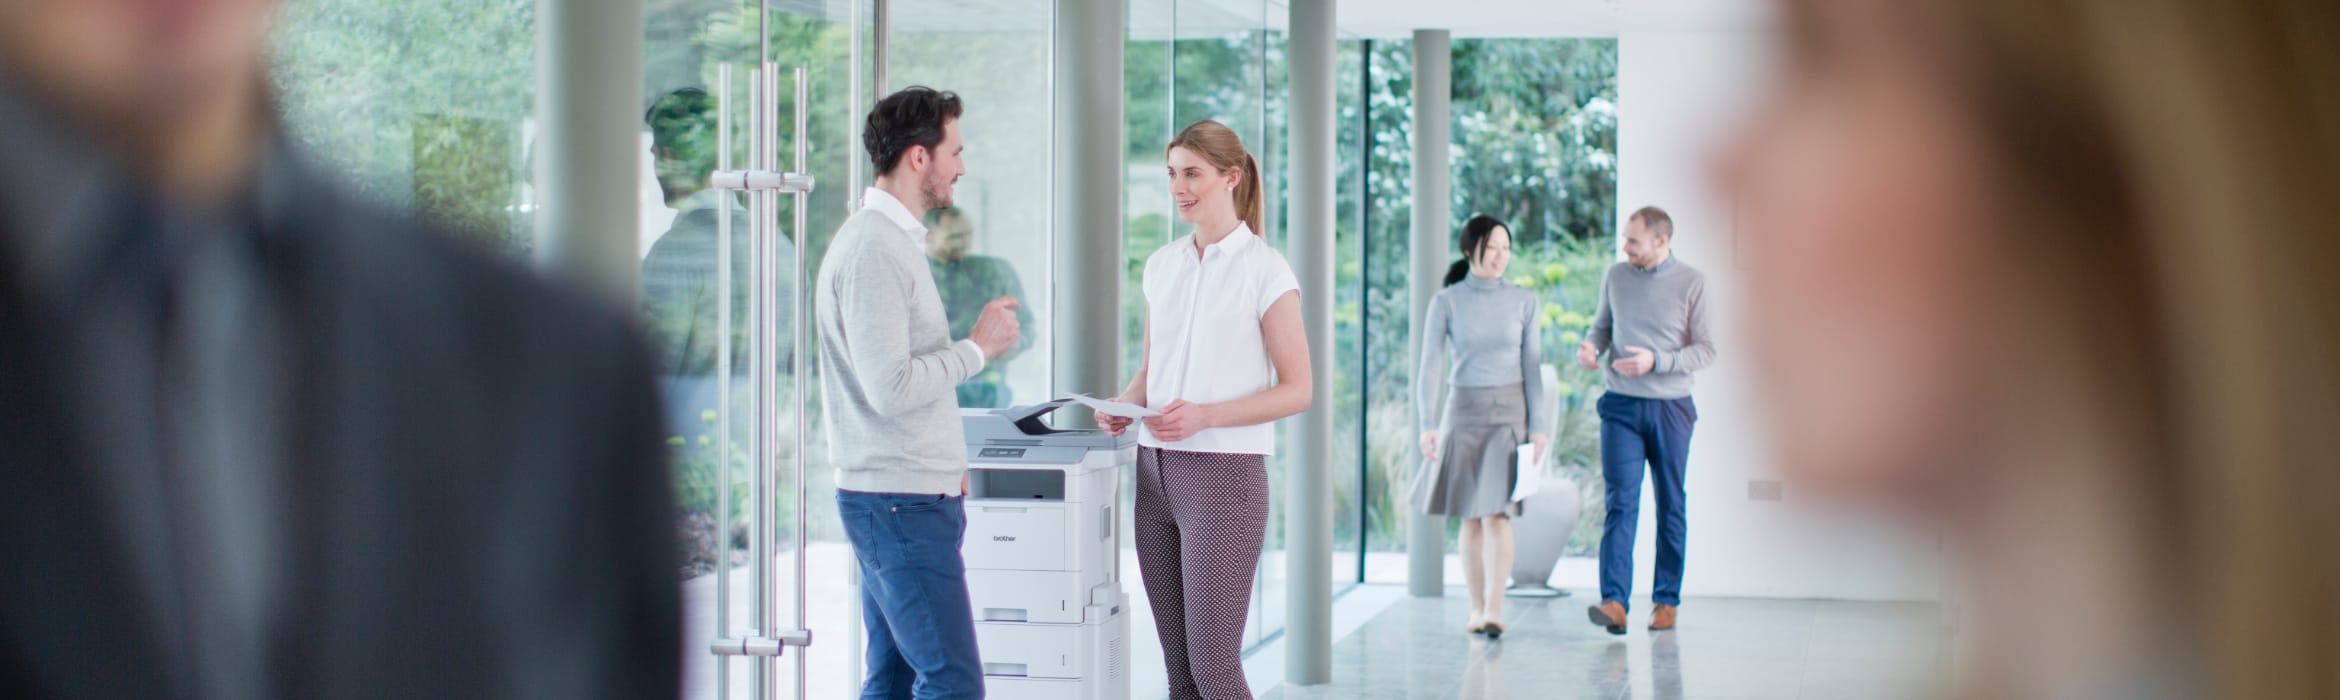 Two colleagues talking while standing next to an MFC-L6900DW printer in a public area of a busy glass walled office